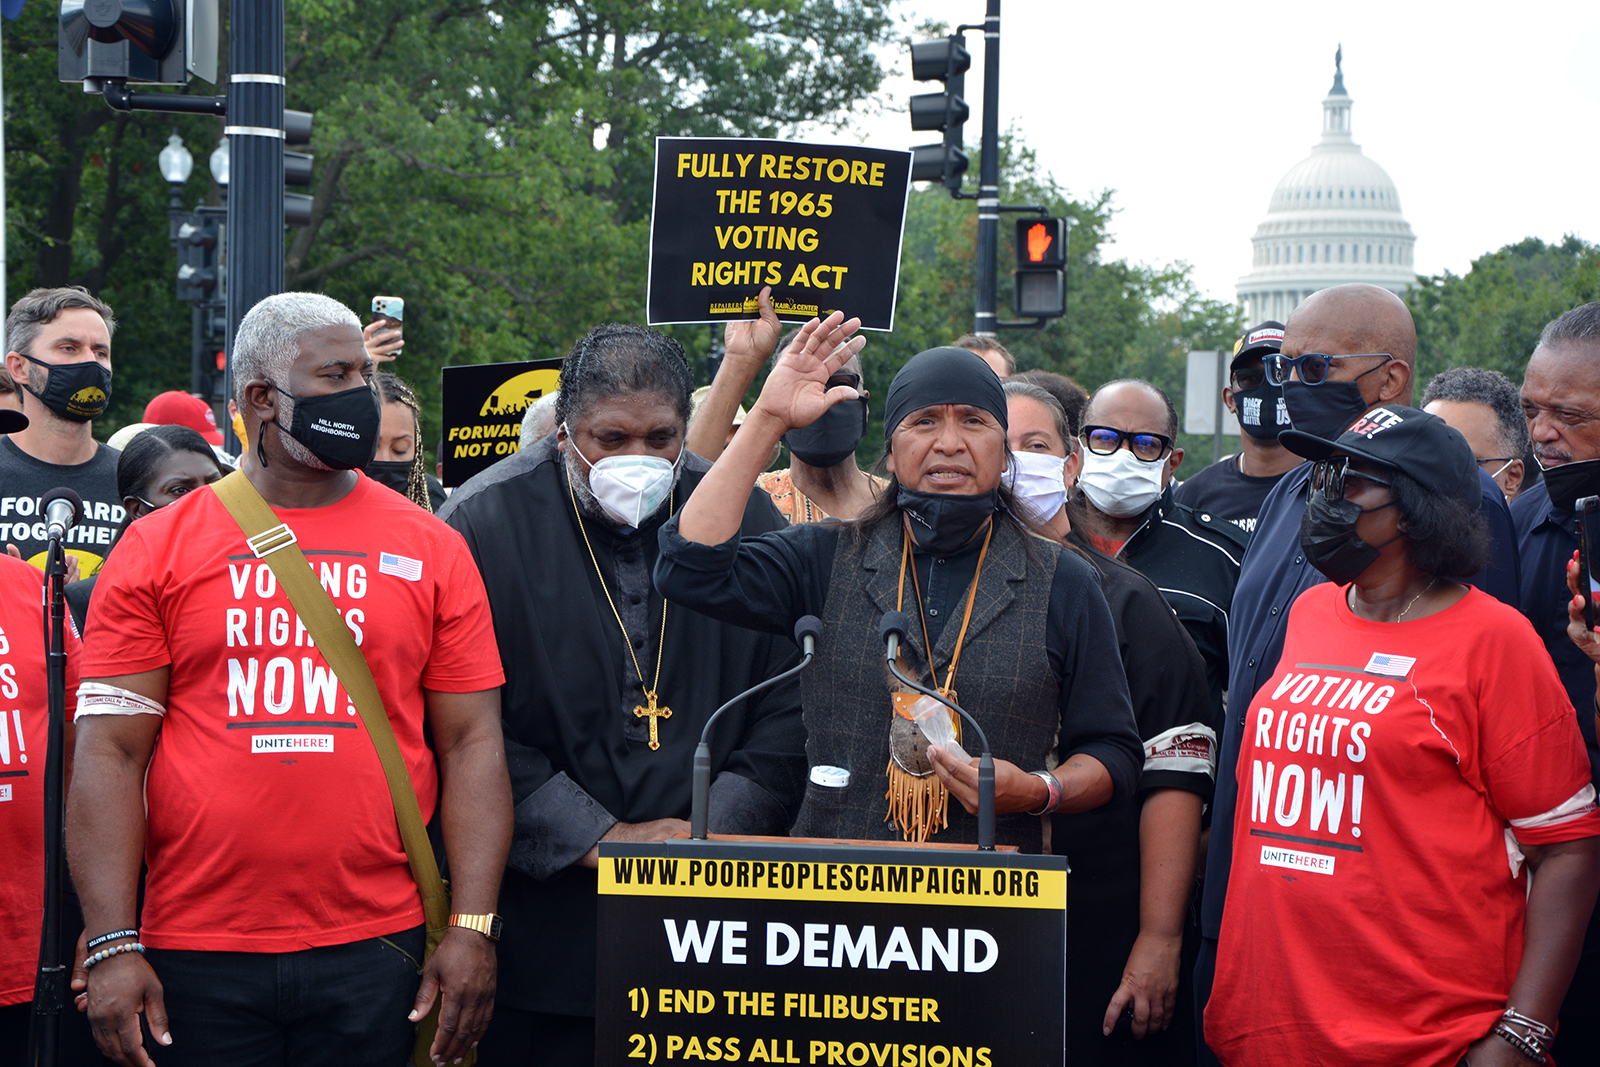 Wendlser Nosie, an Apache activist, speaks during a Poor People's Campaign demonstration in Washington, Monday, Aug. 2, 2021. RNS photo by Jack Jenkins